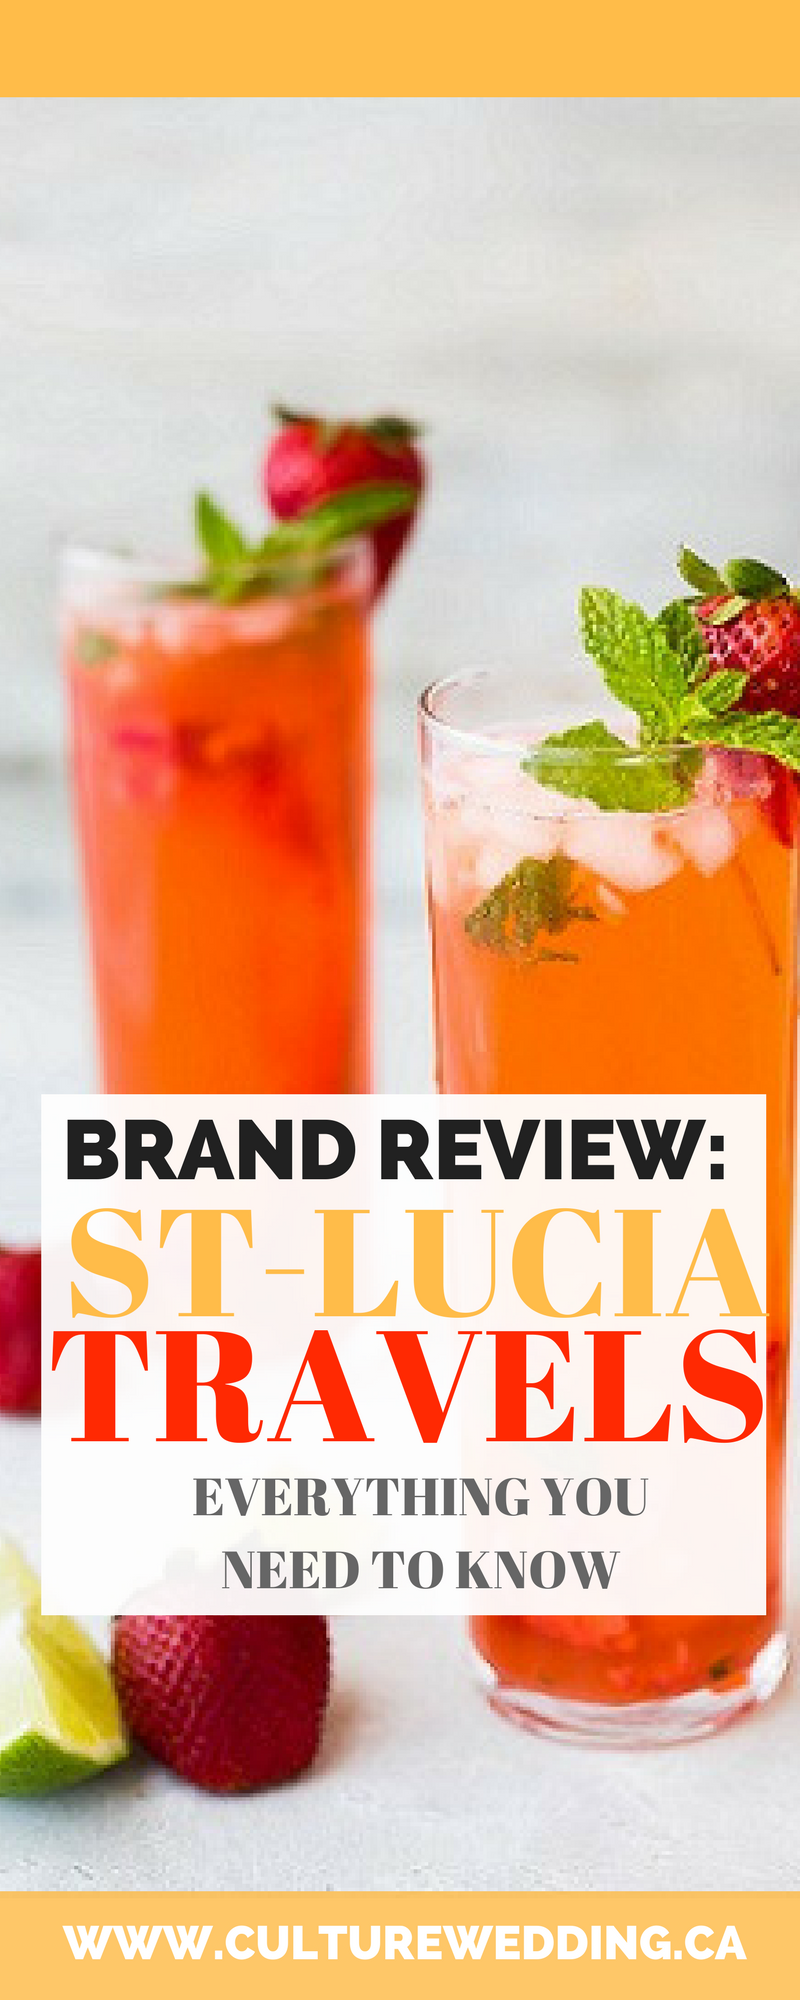 St. Lucia Travels